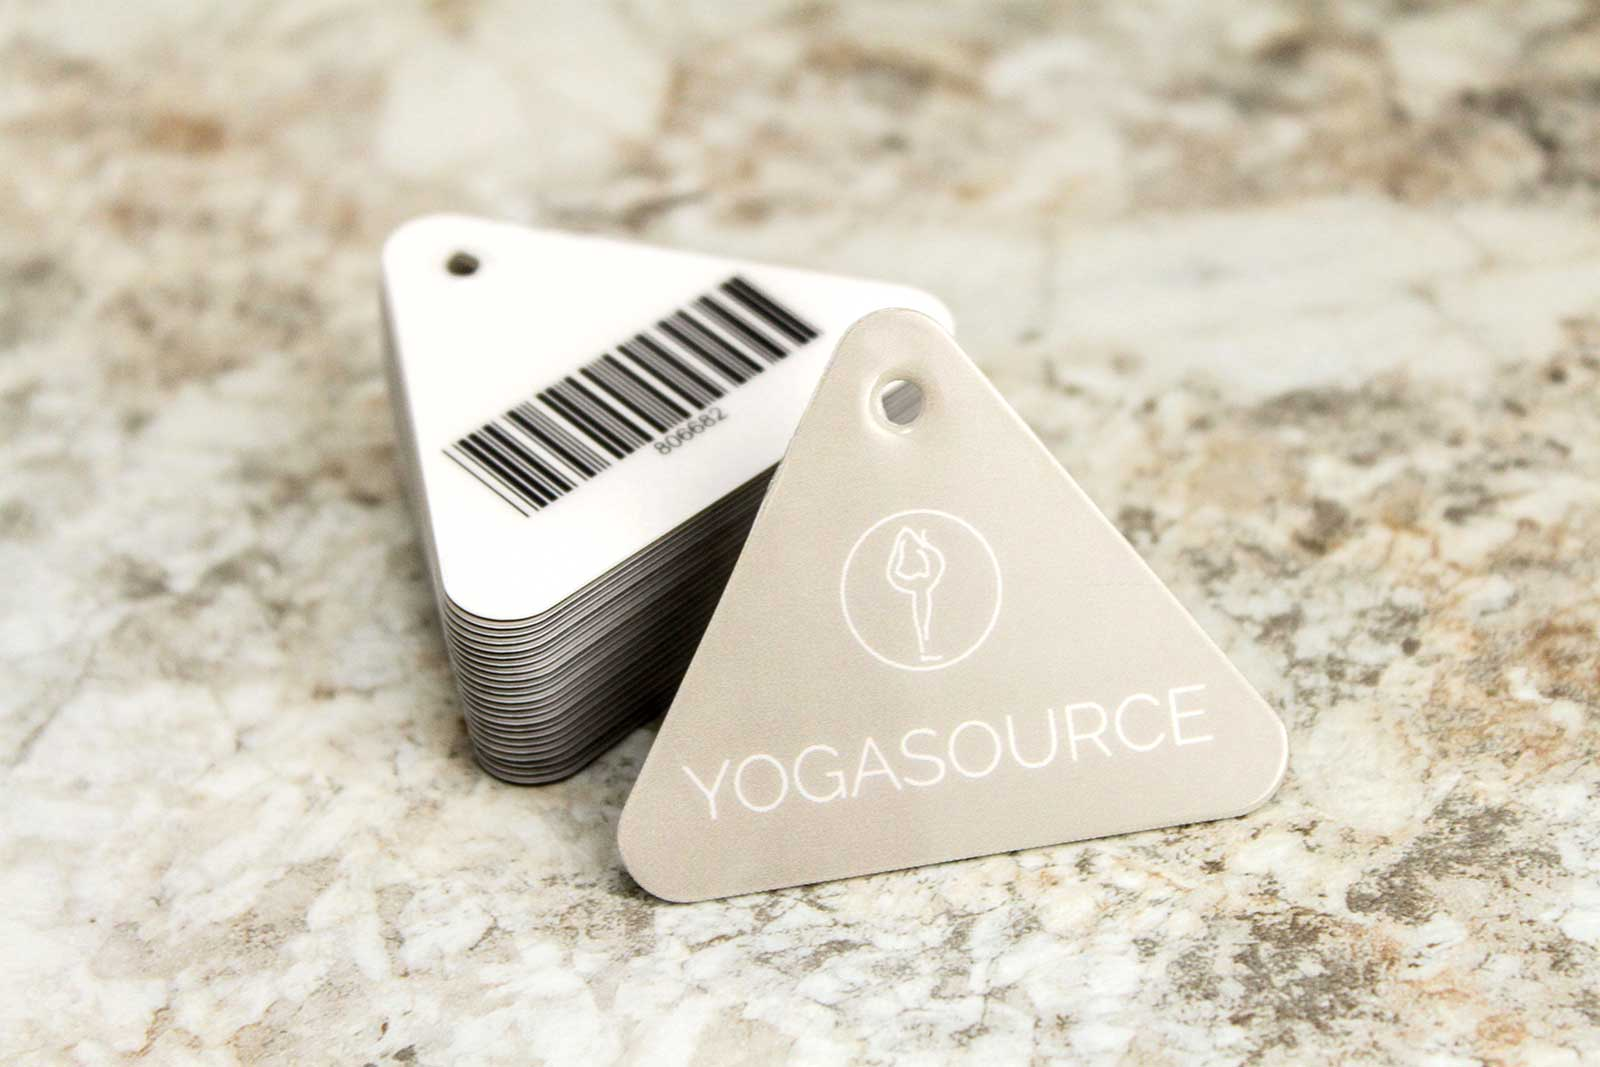 Yoga Source Custom Plastic Shaped Key Tags